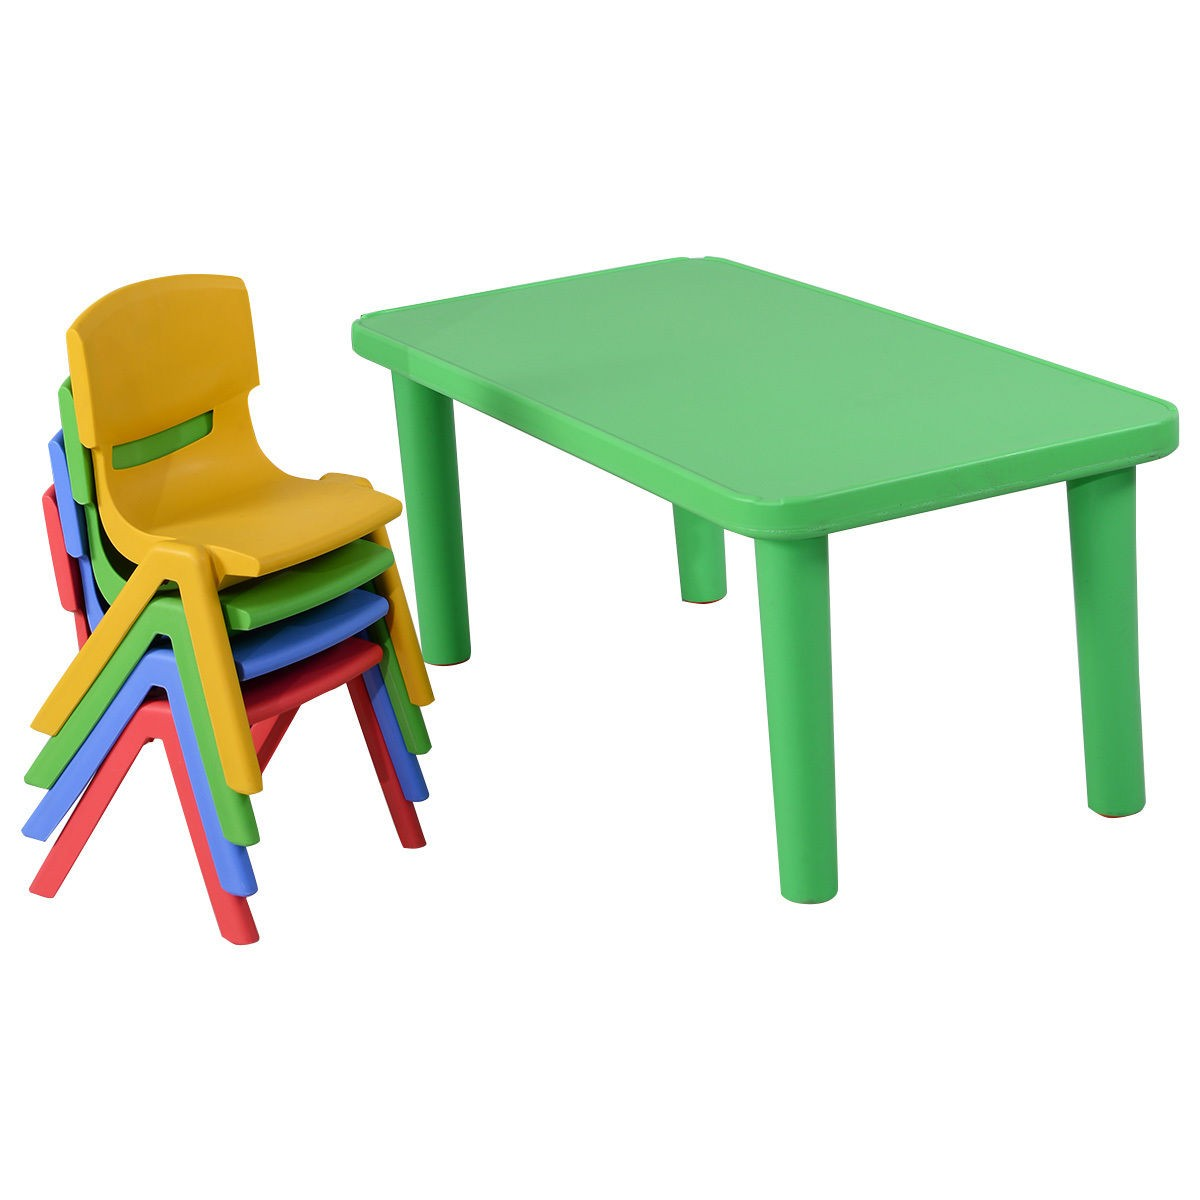 Toddler Table And Chairs Plastic Fun Kids Plastic Table And 4 Chairs Set Colorful Play